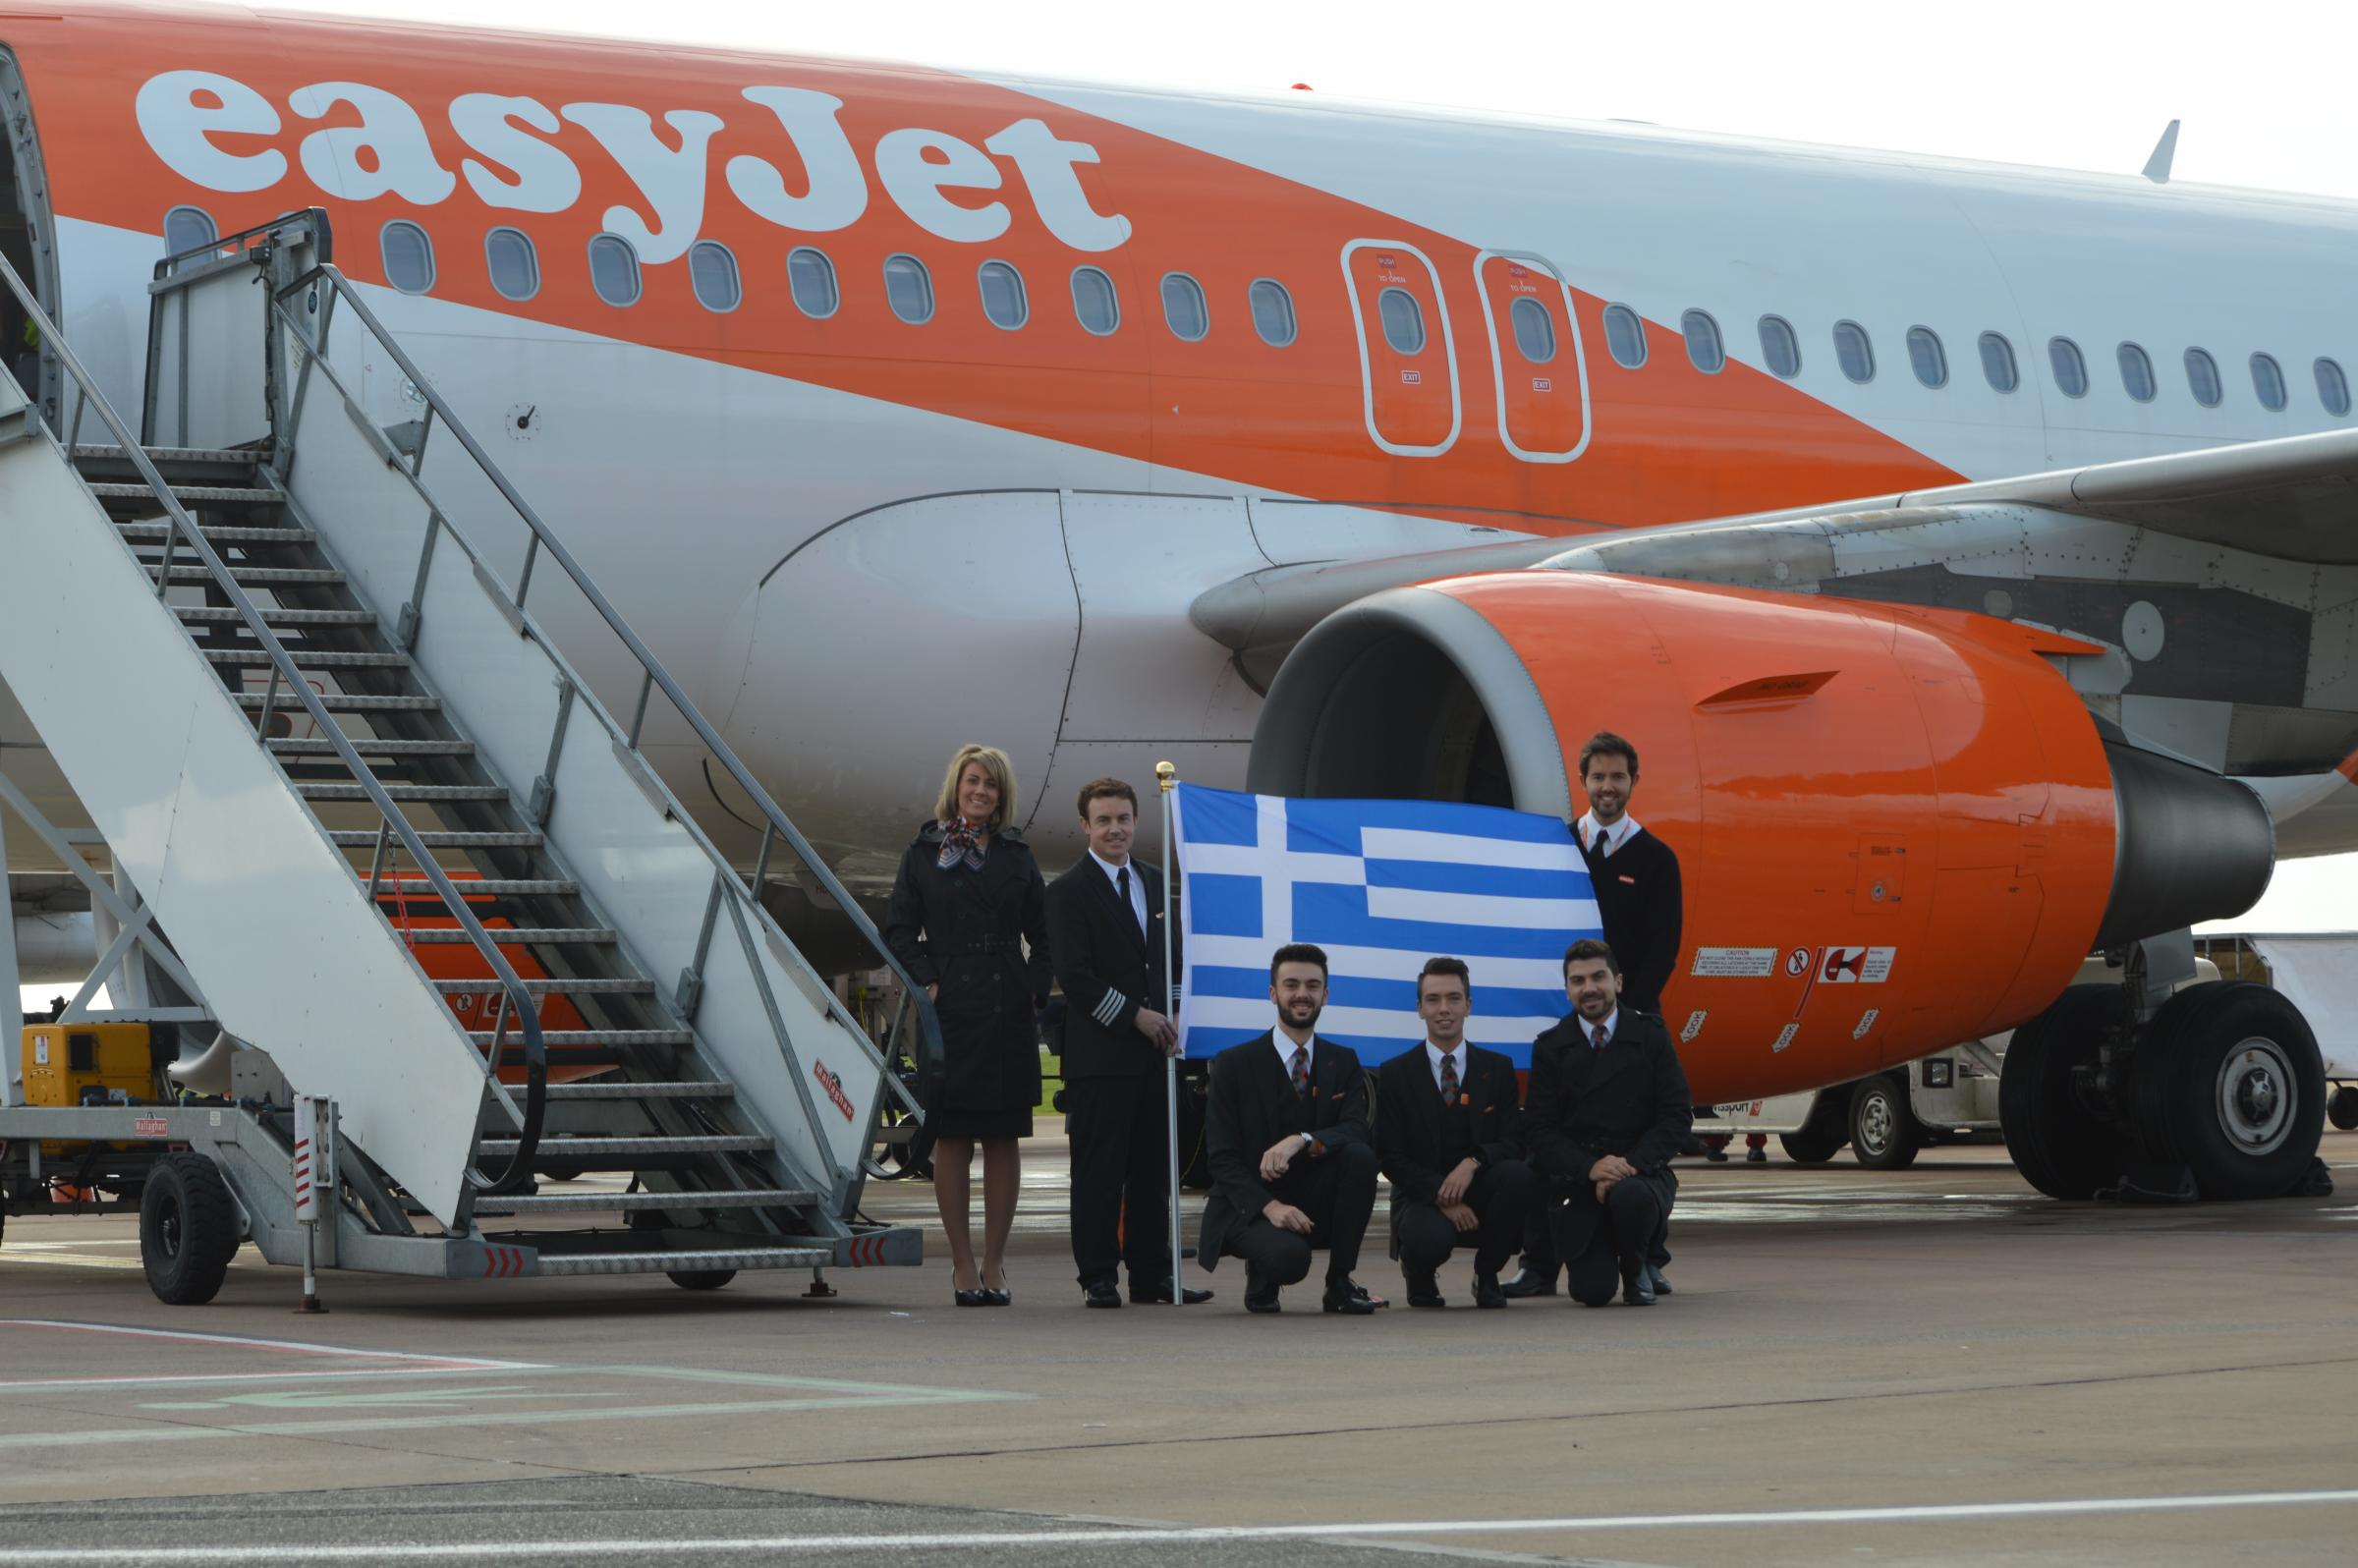 EasyJet has launched a service between Bristol and Athens